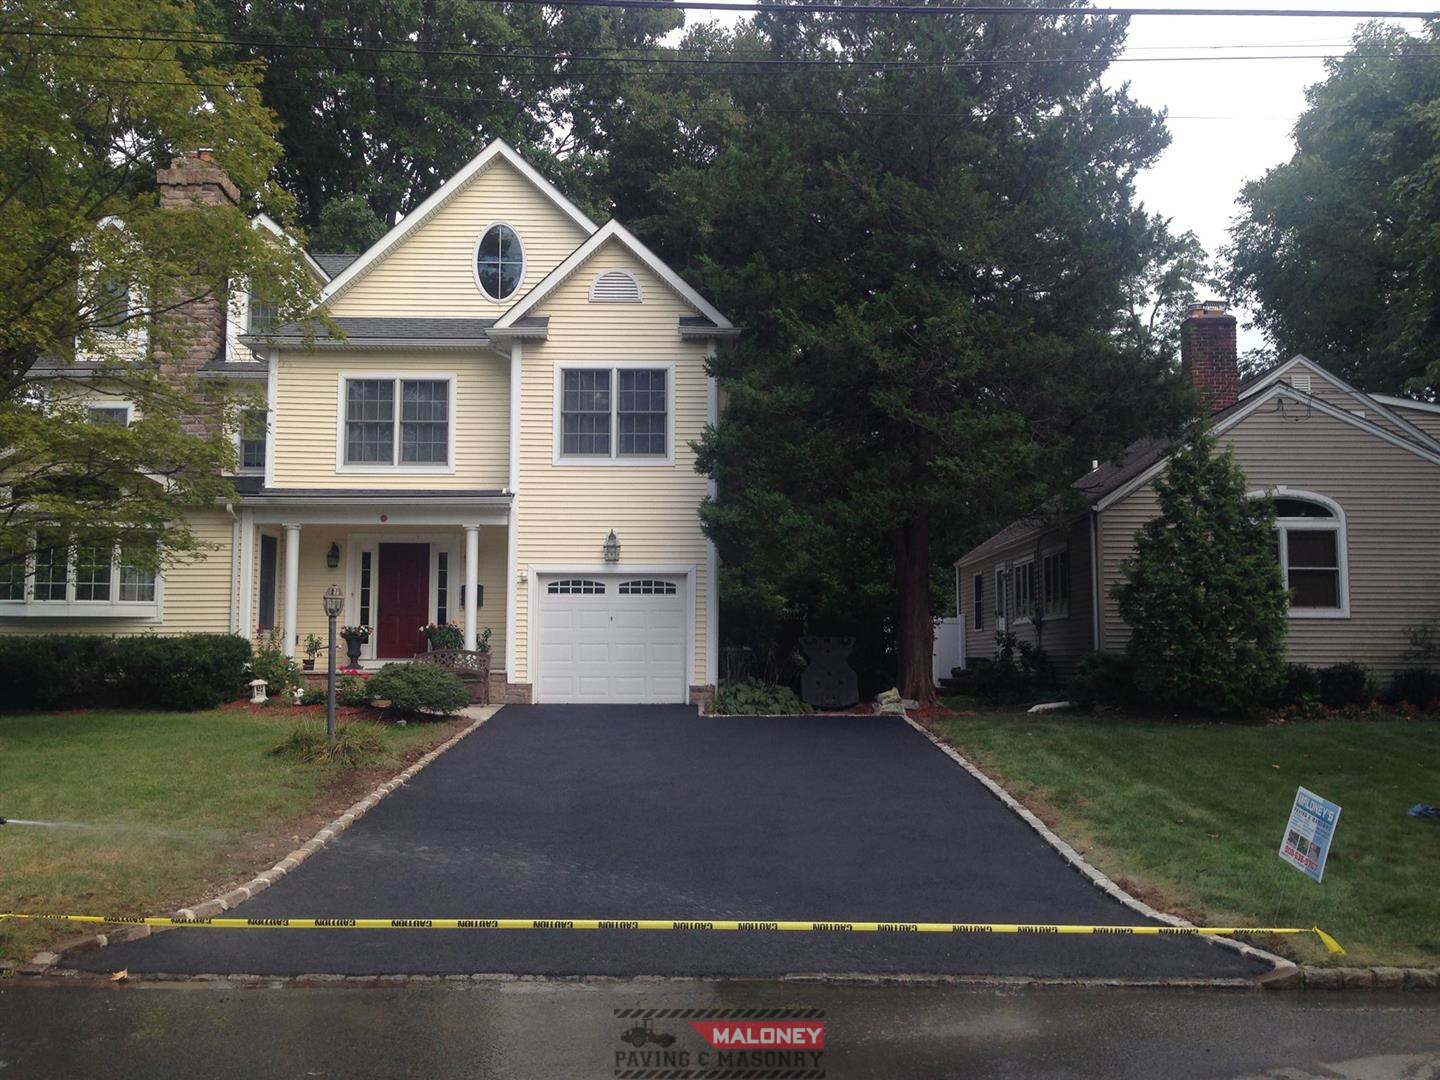 Driveway Paving in Springfield Township, NJ